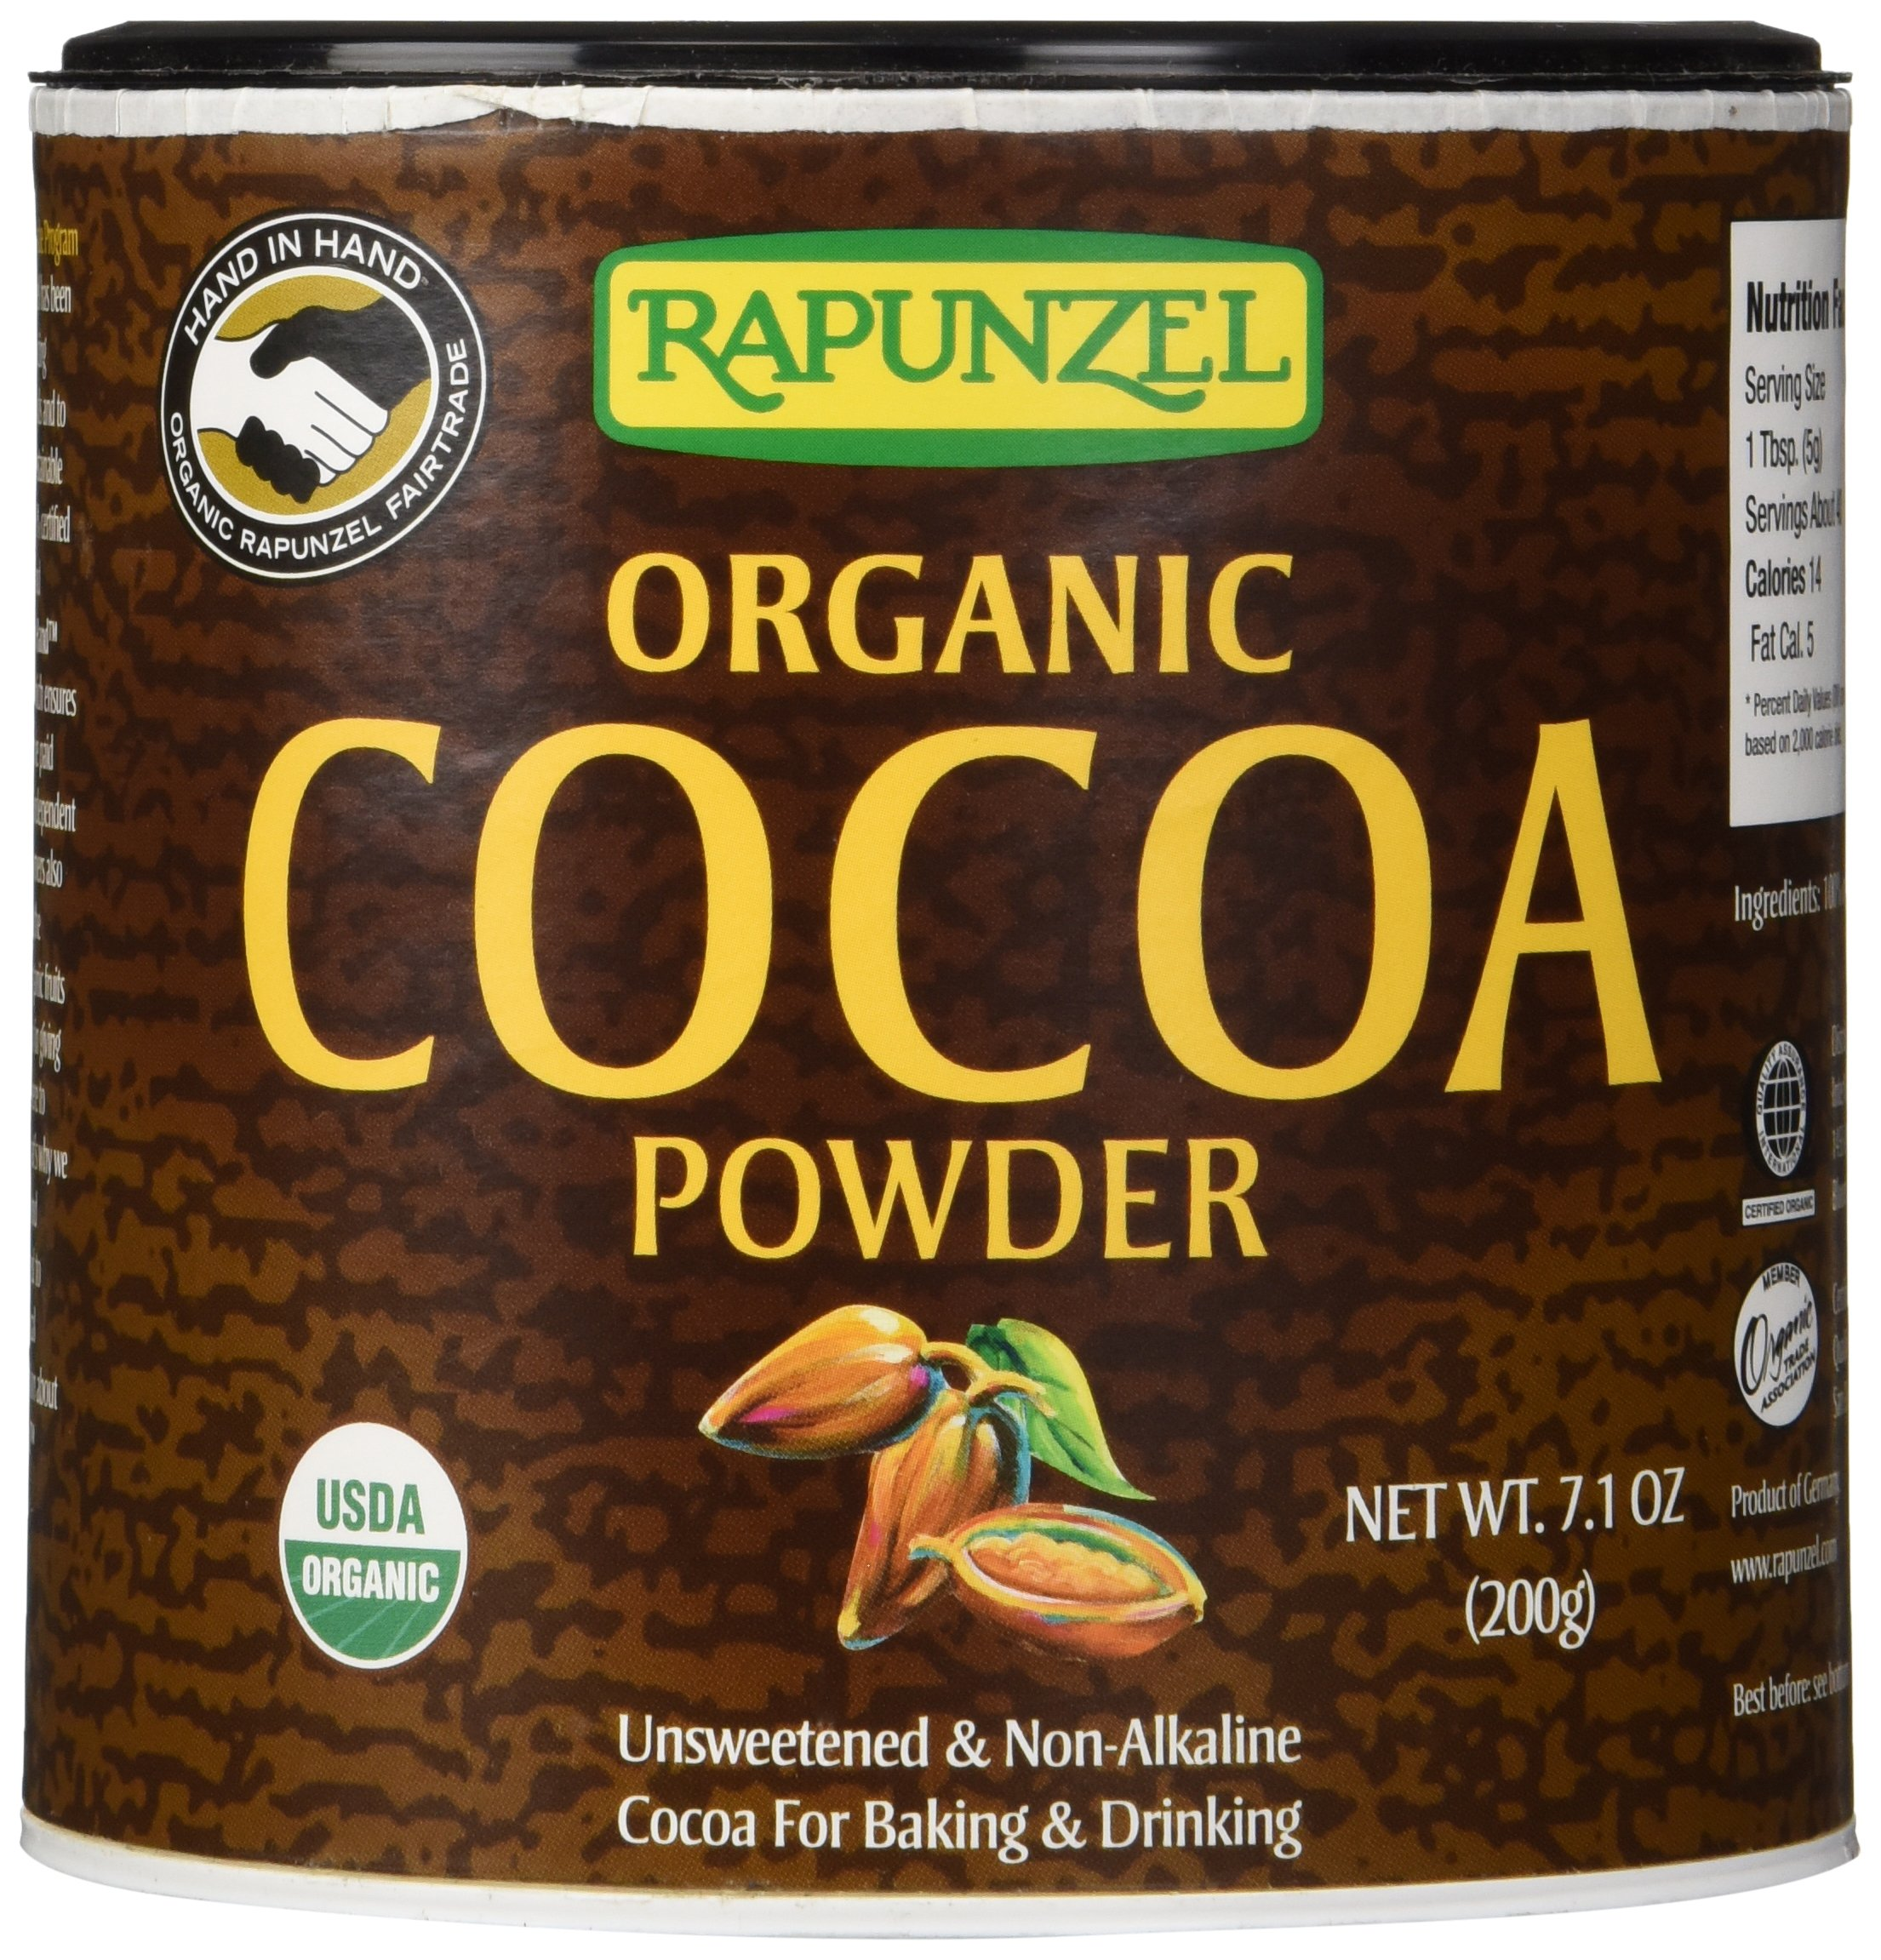 Rapunzel Pure Organic Cocoa Powder, 7.1 oz